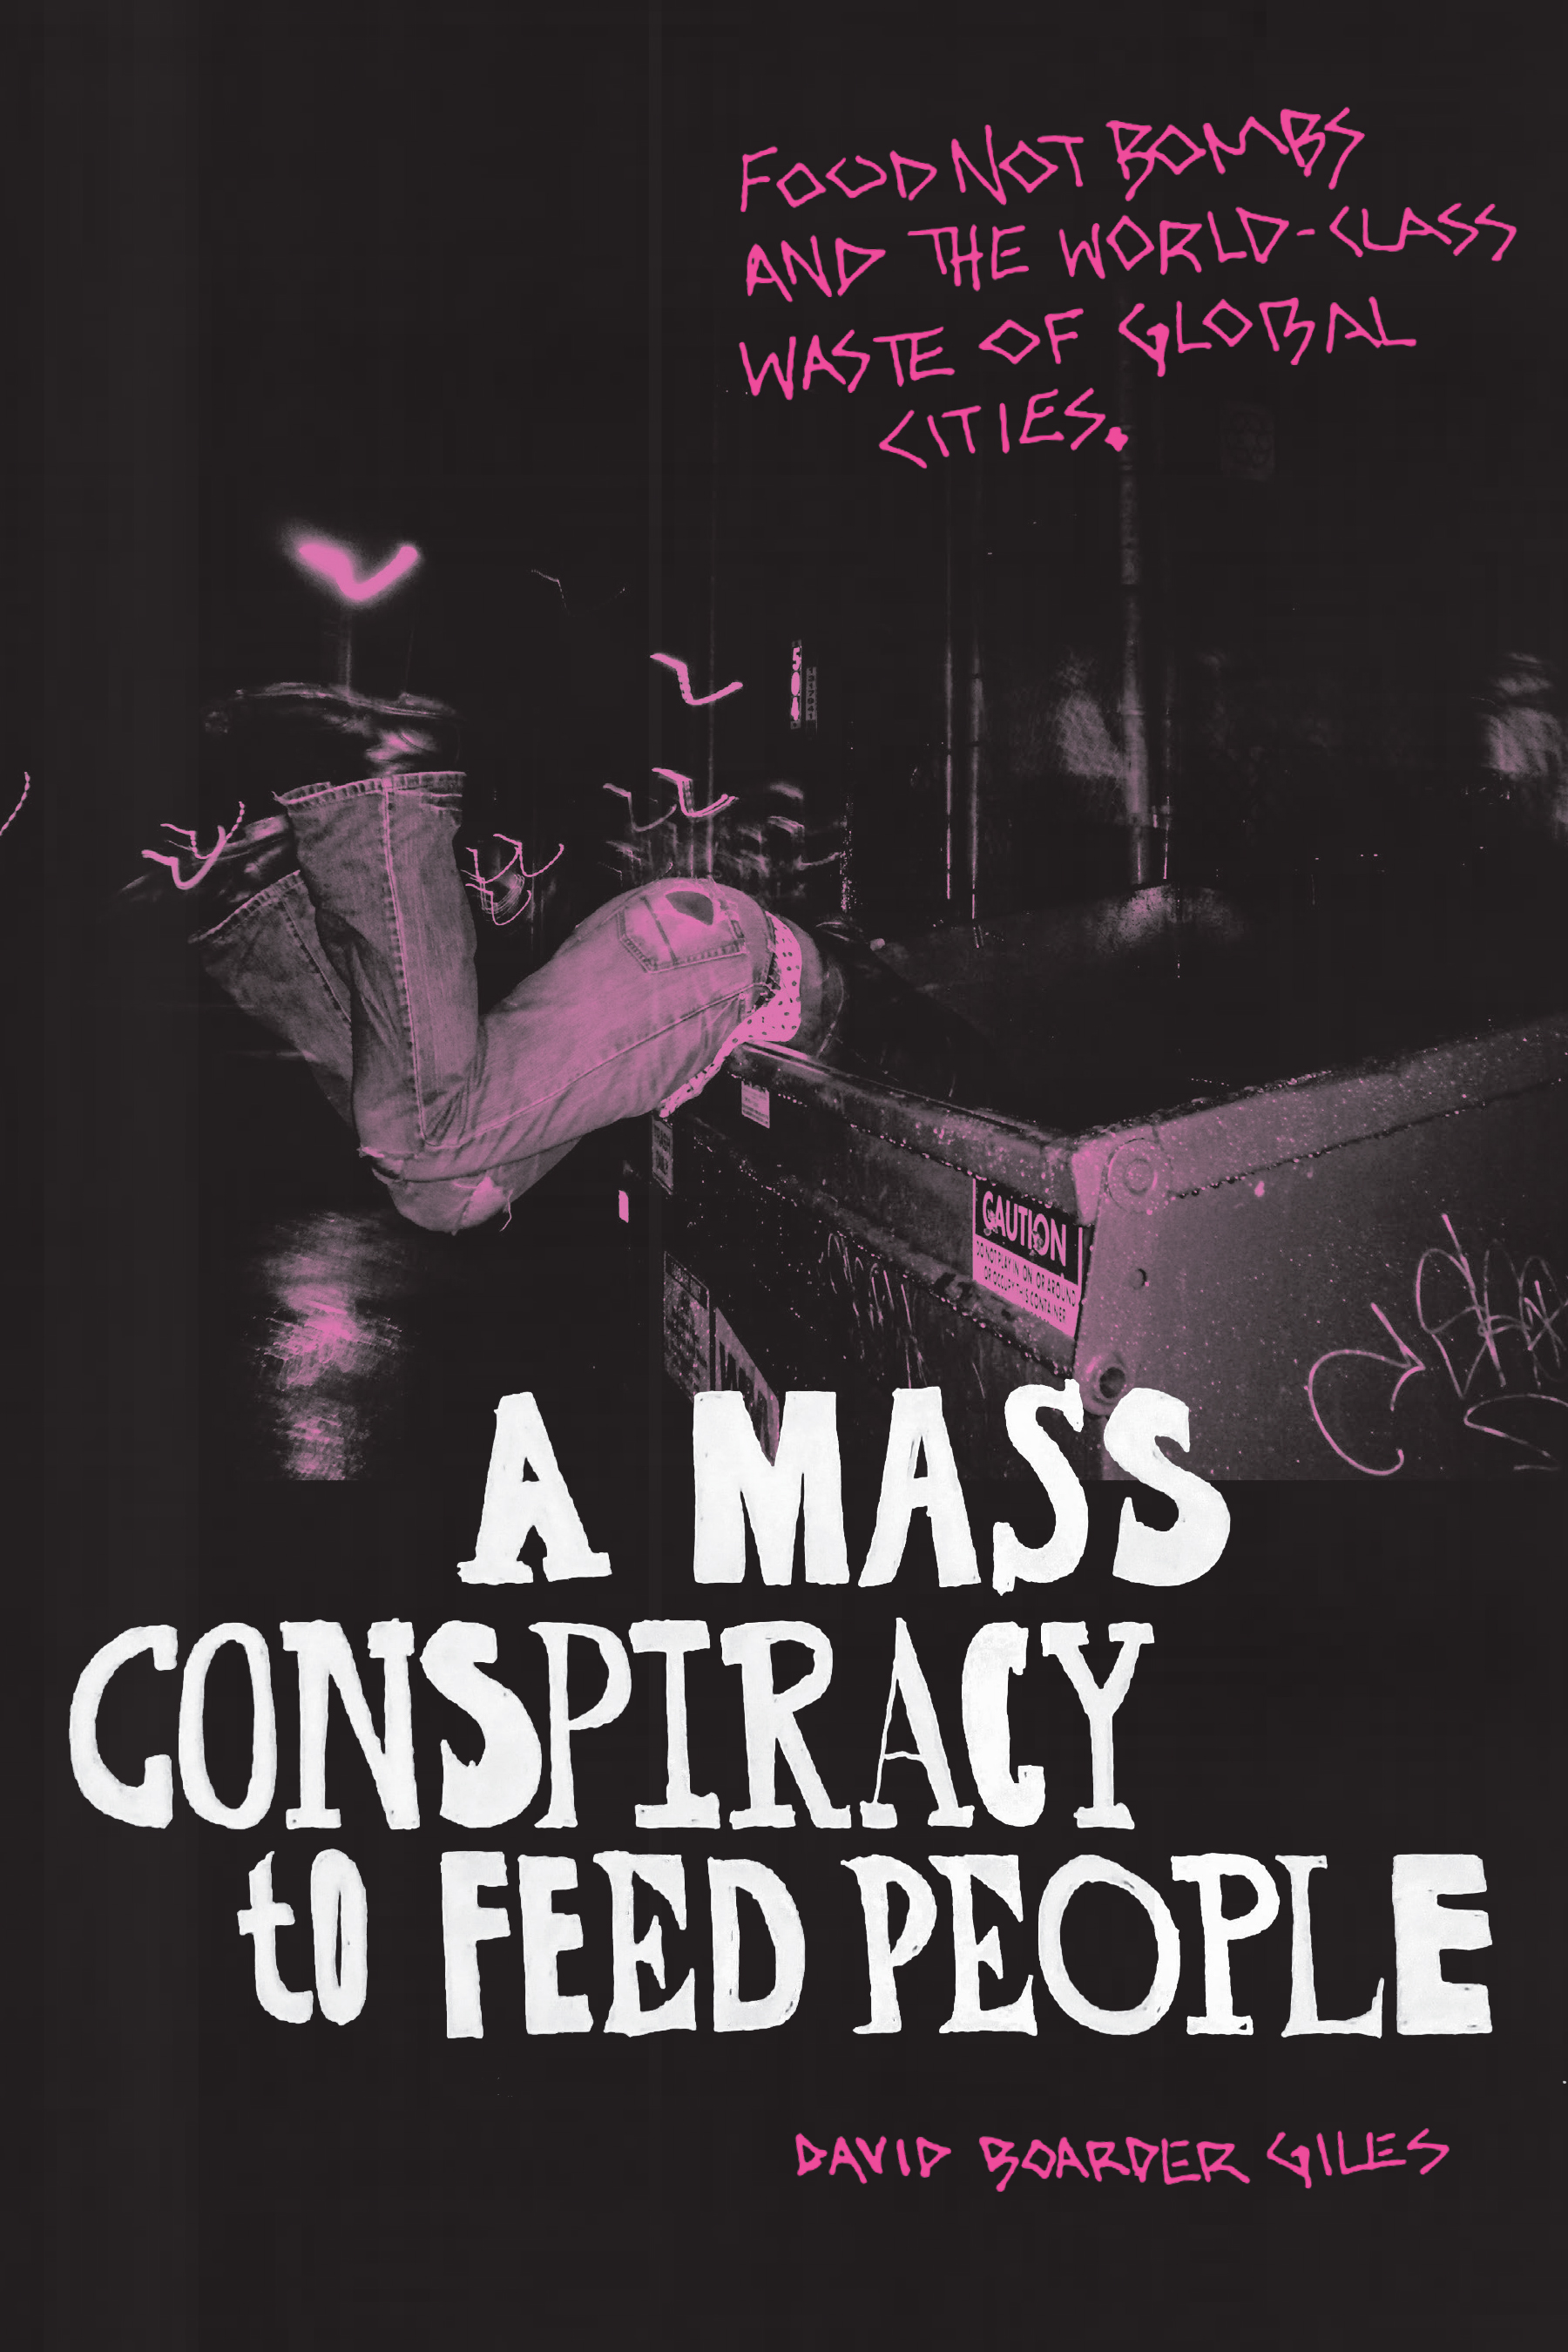 A Mass Conspiracy to Feed People: Food Not Bombs and the World-Class Waste of Global Cities